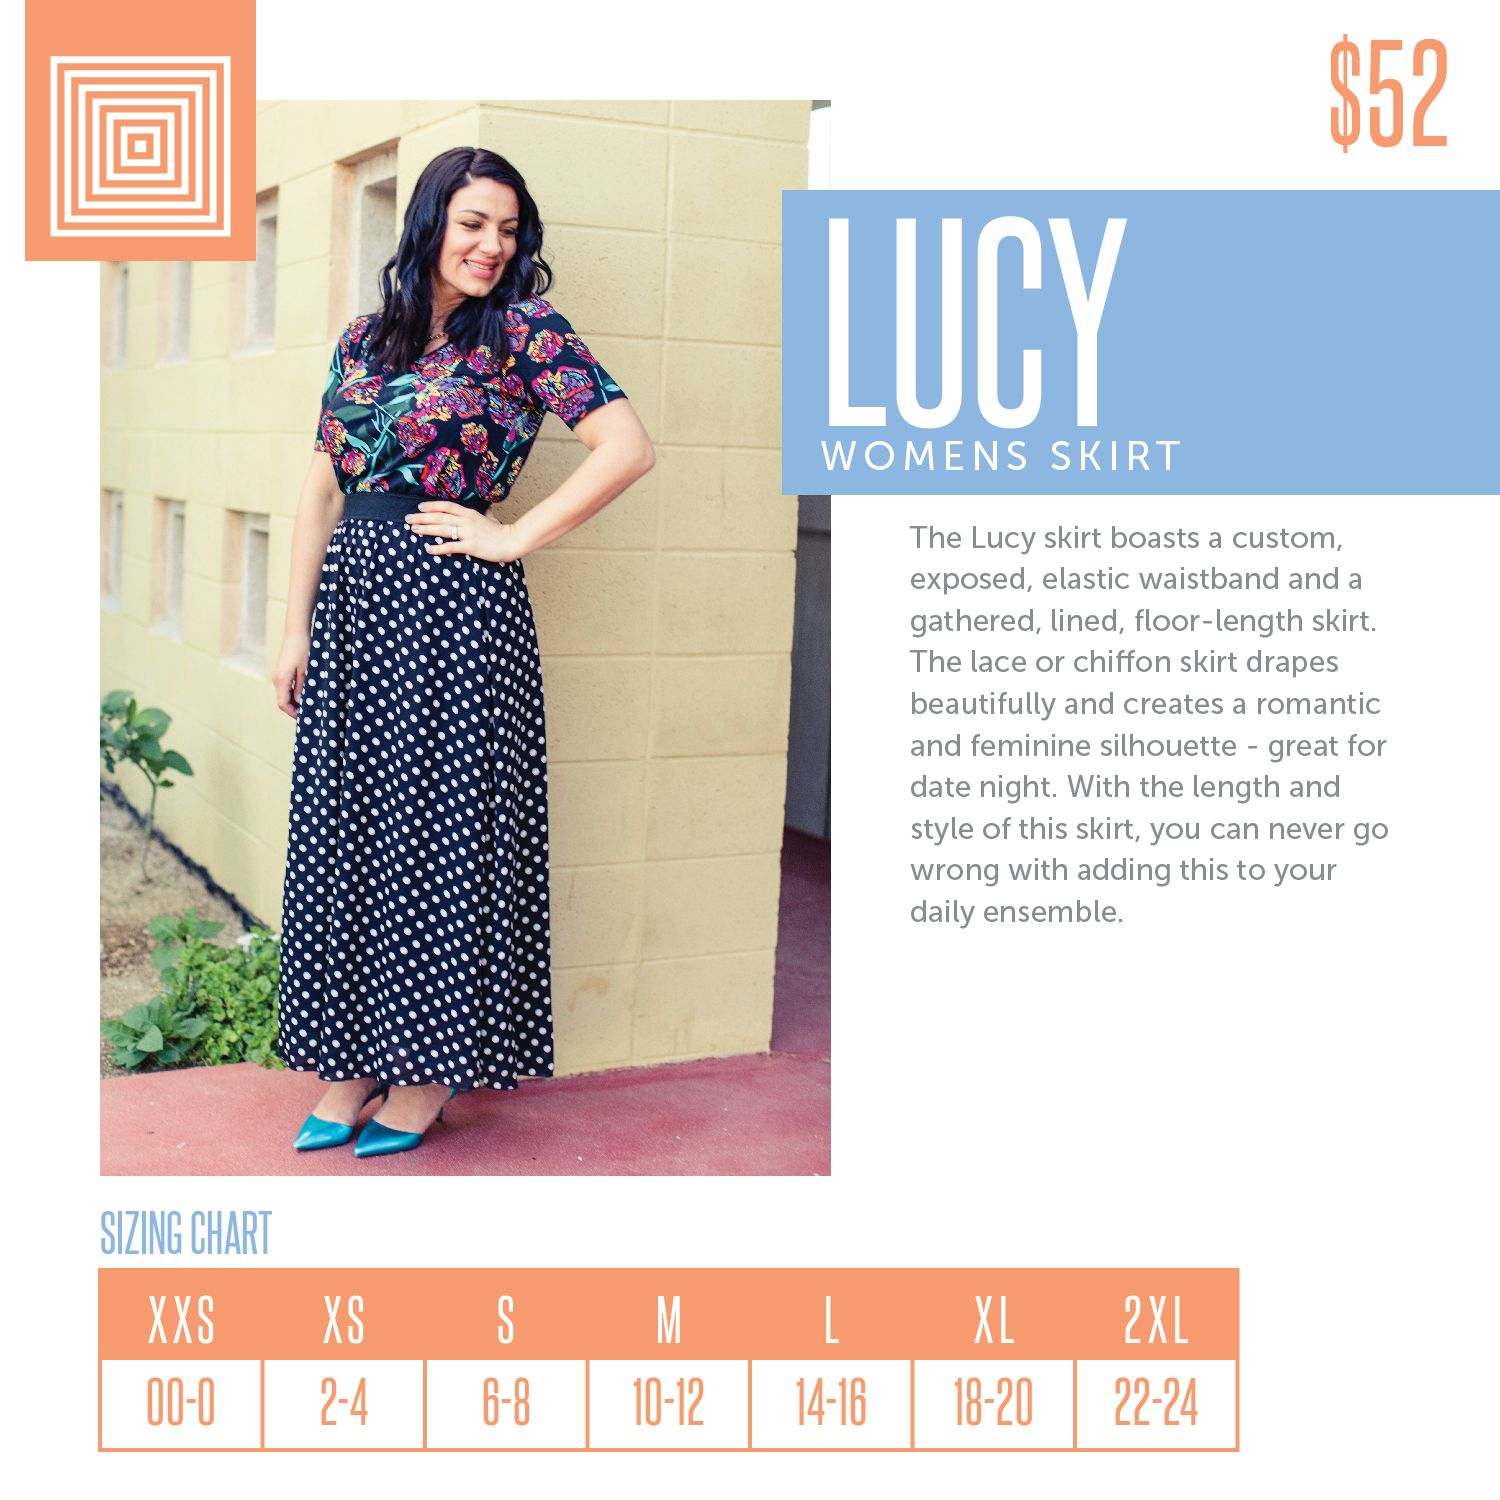 475a3a7bf66afb Floor-length, double-layered Maxi skirt. Click the image to join my group  and browse my selection #lularoelucy